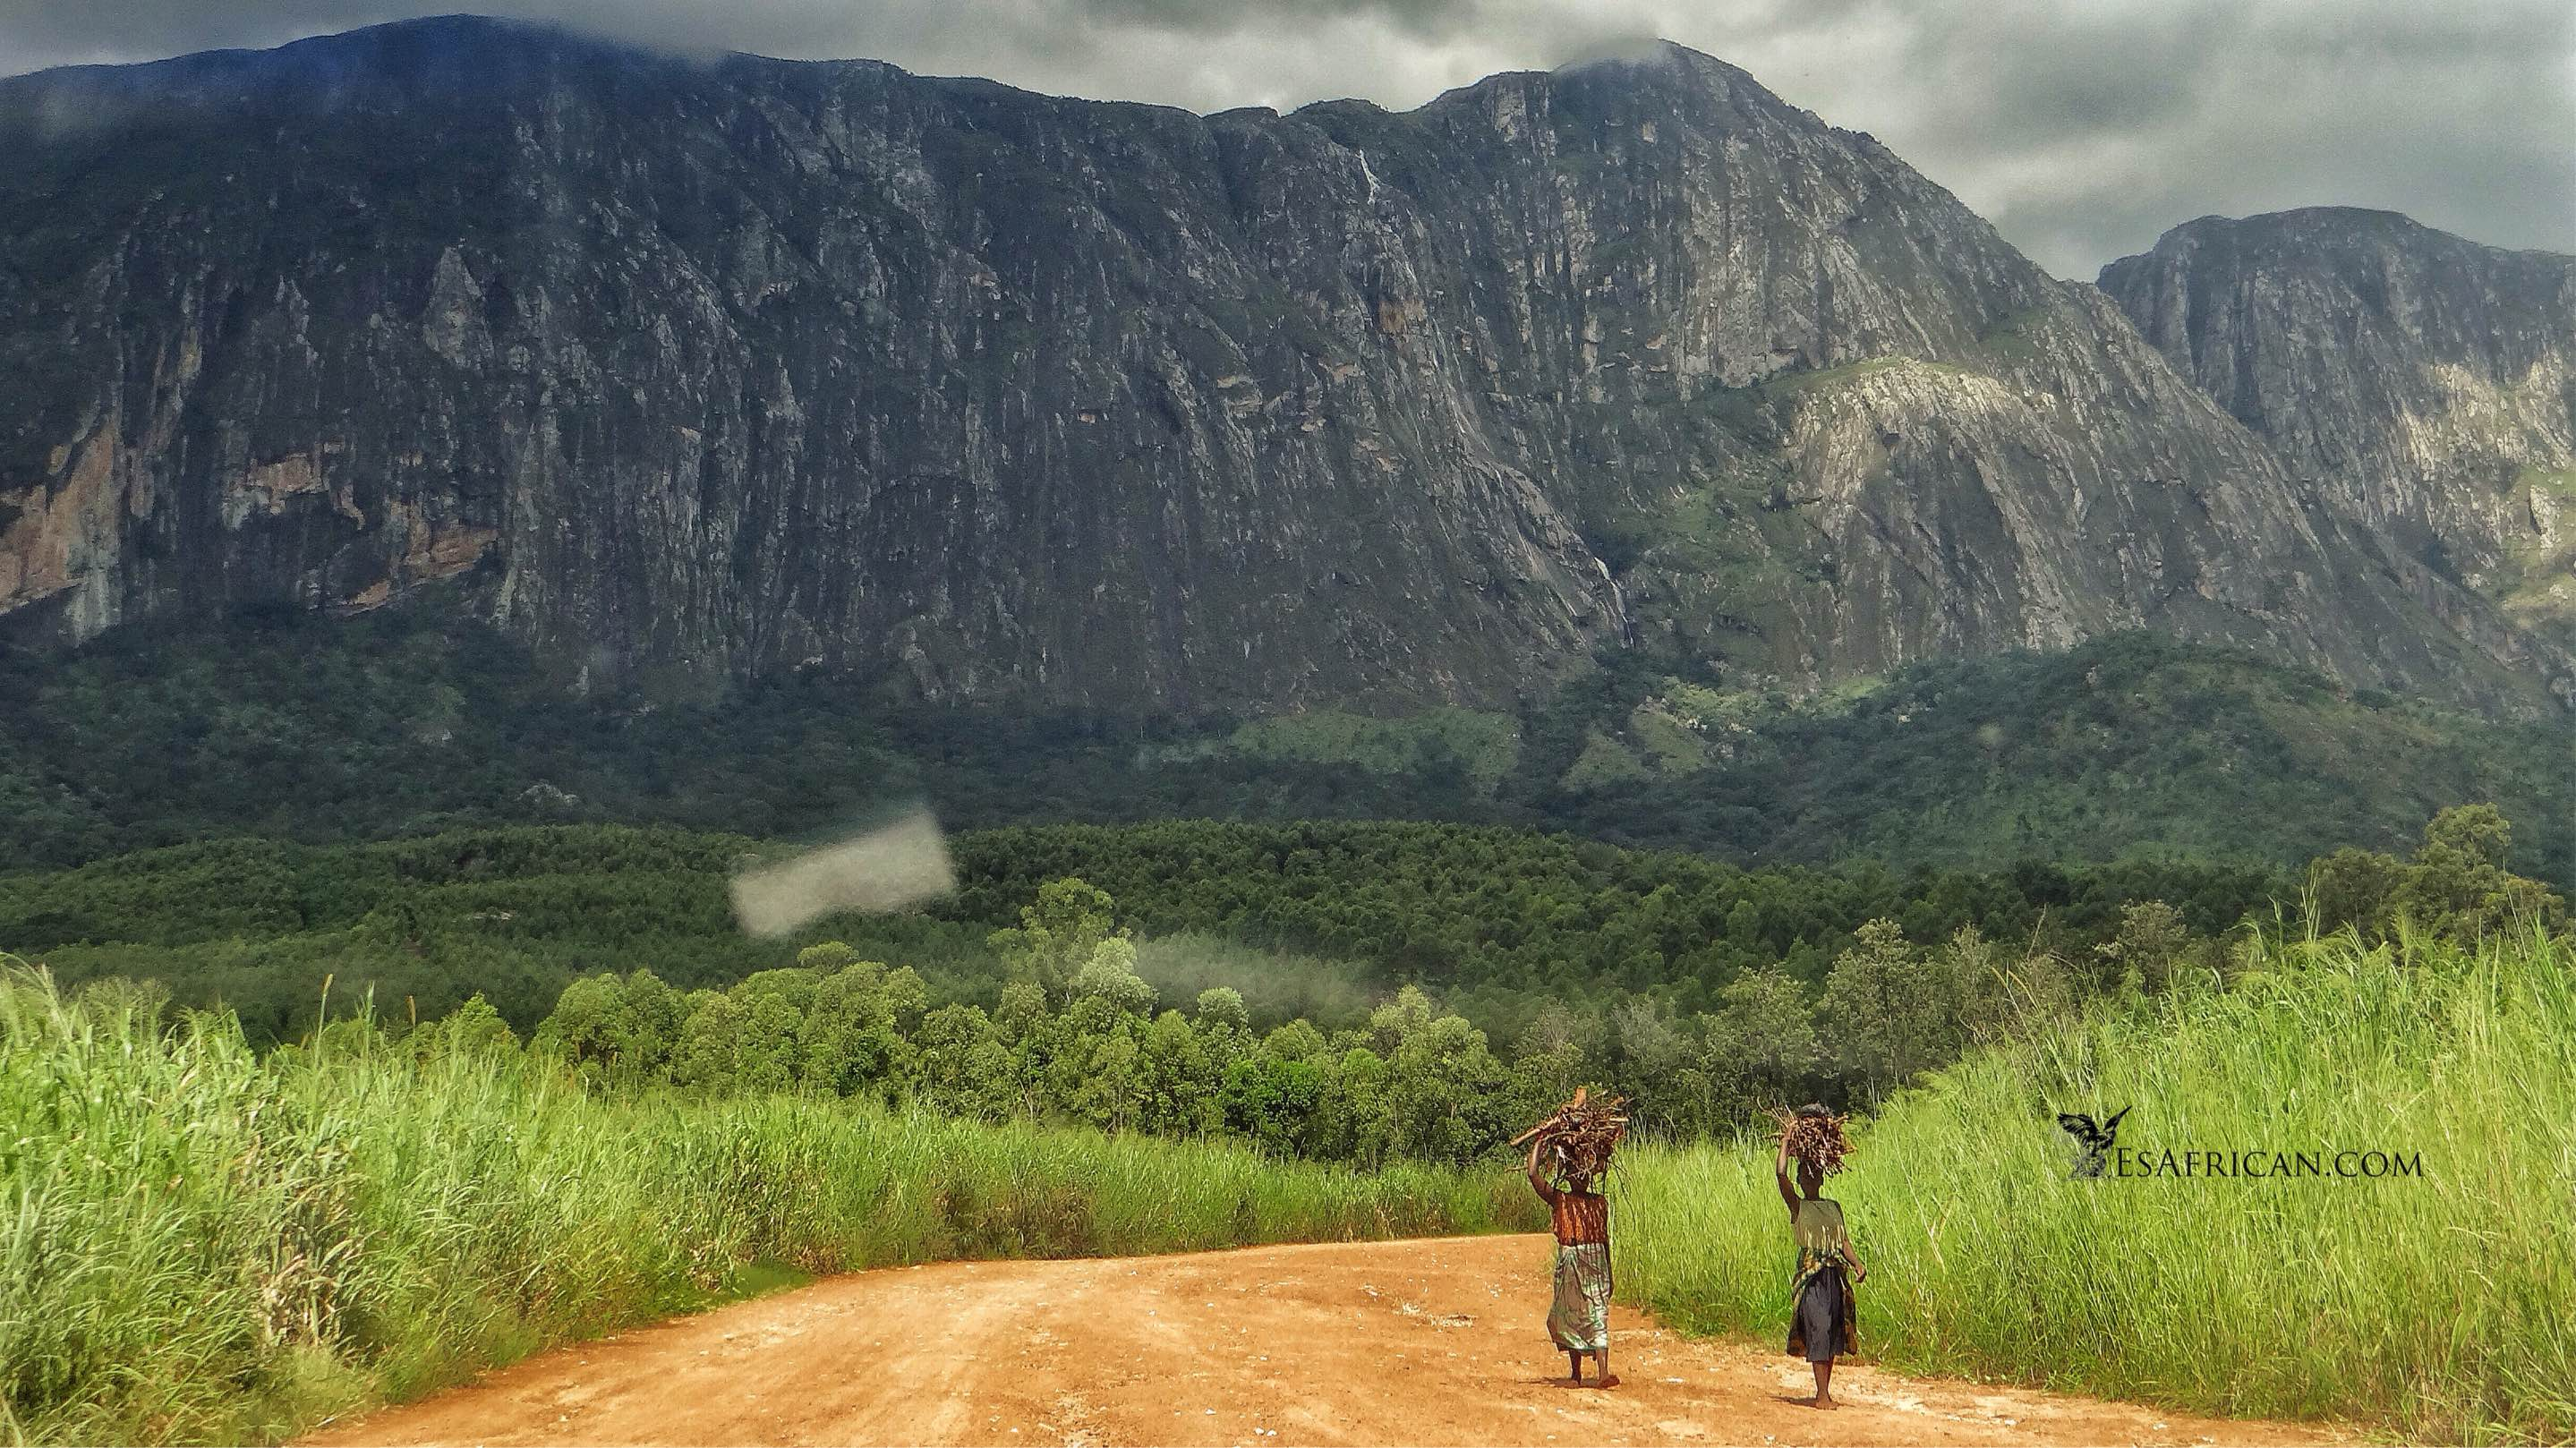 Mulanje: our brief introduction to travel in Malawi does not include rock-climbing or swimming... These should come later. A brief word about walking is appropriate in a post that is intended to mainly cover road travel.